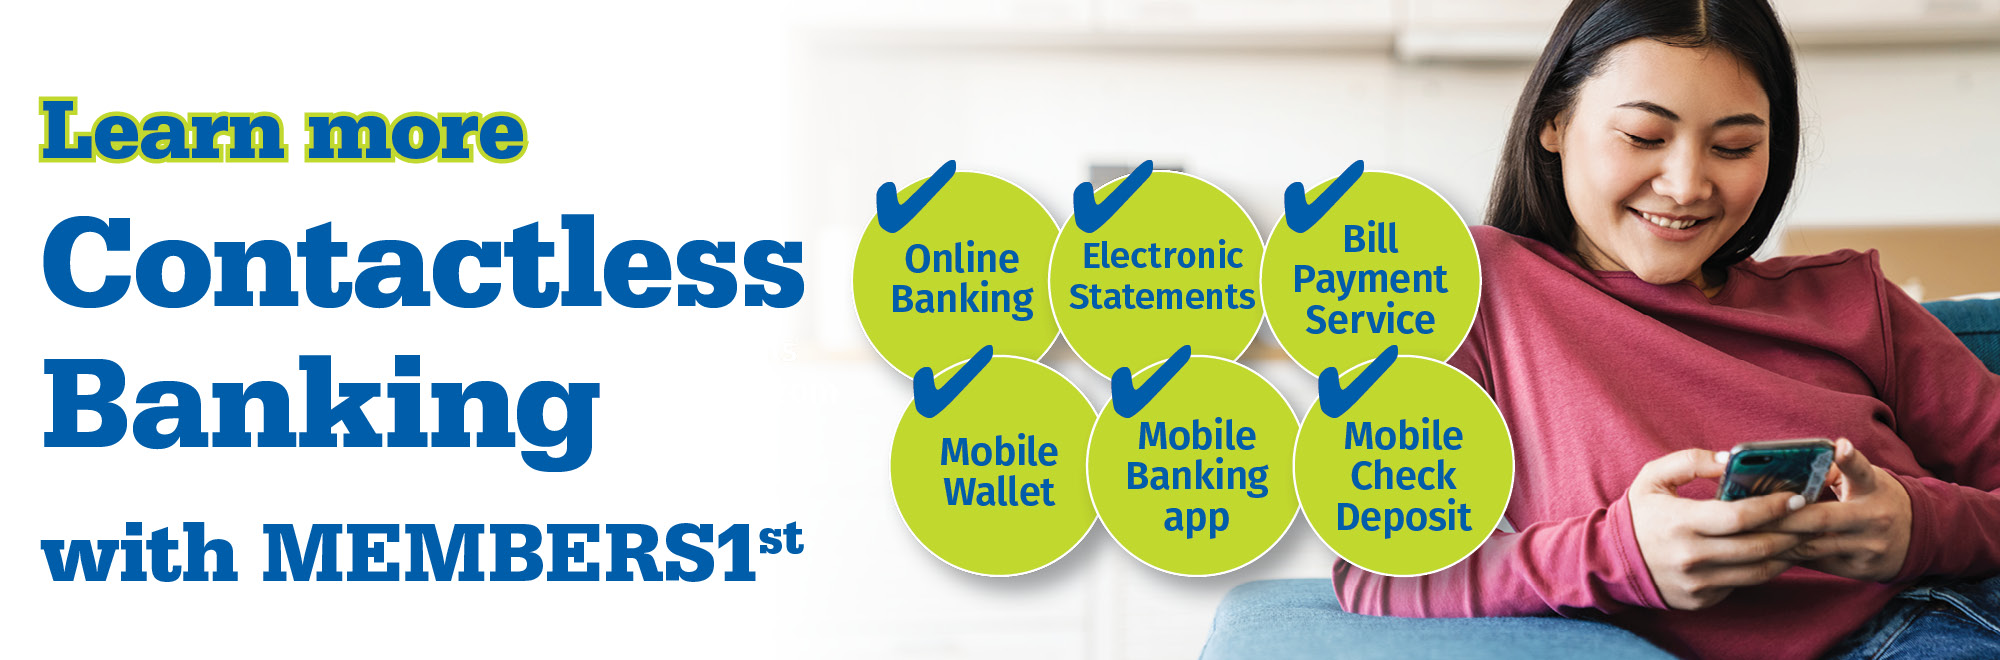 Enjoy Contactless Banking with MEMBERS1st!